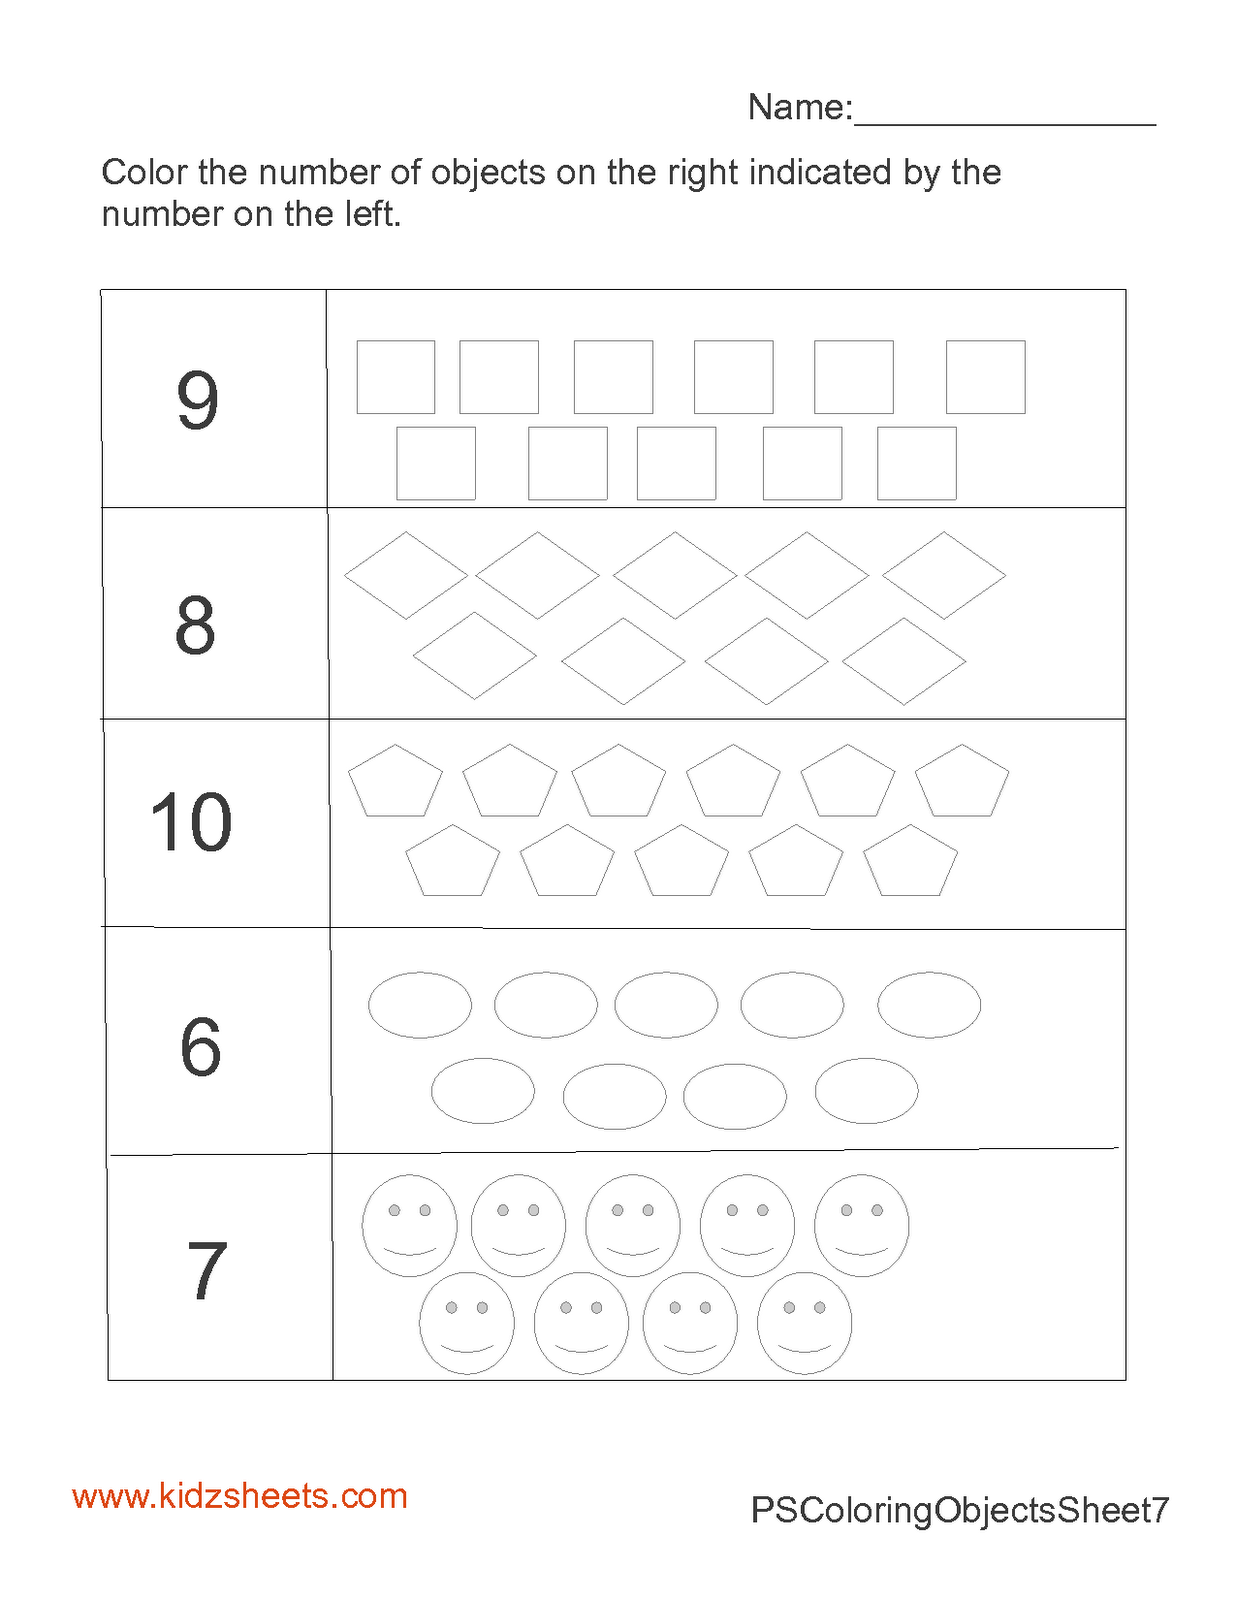 Kidz Worksheets Preschool Count Amp Color 6 10 Worksheet2